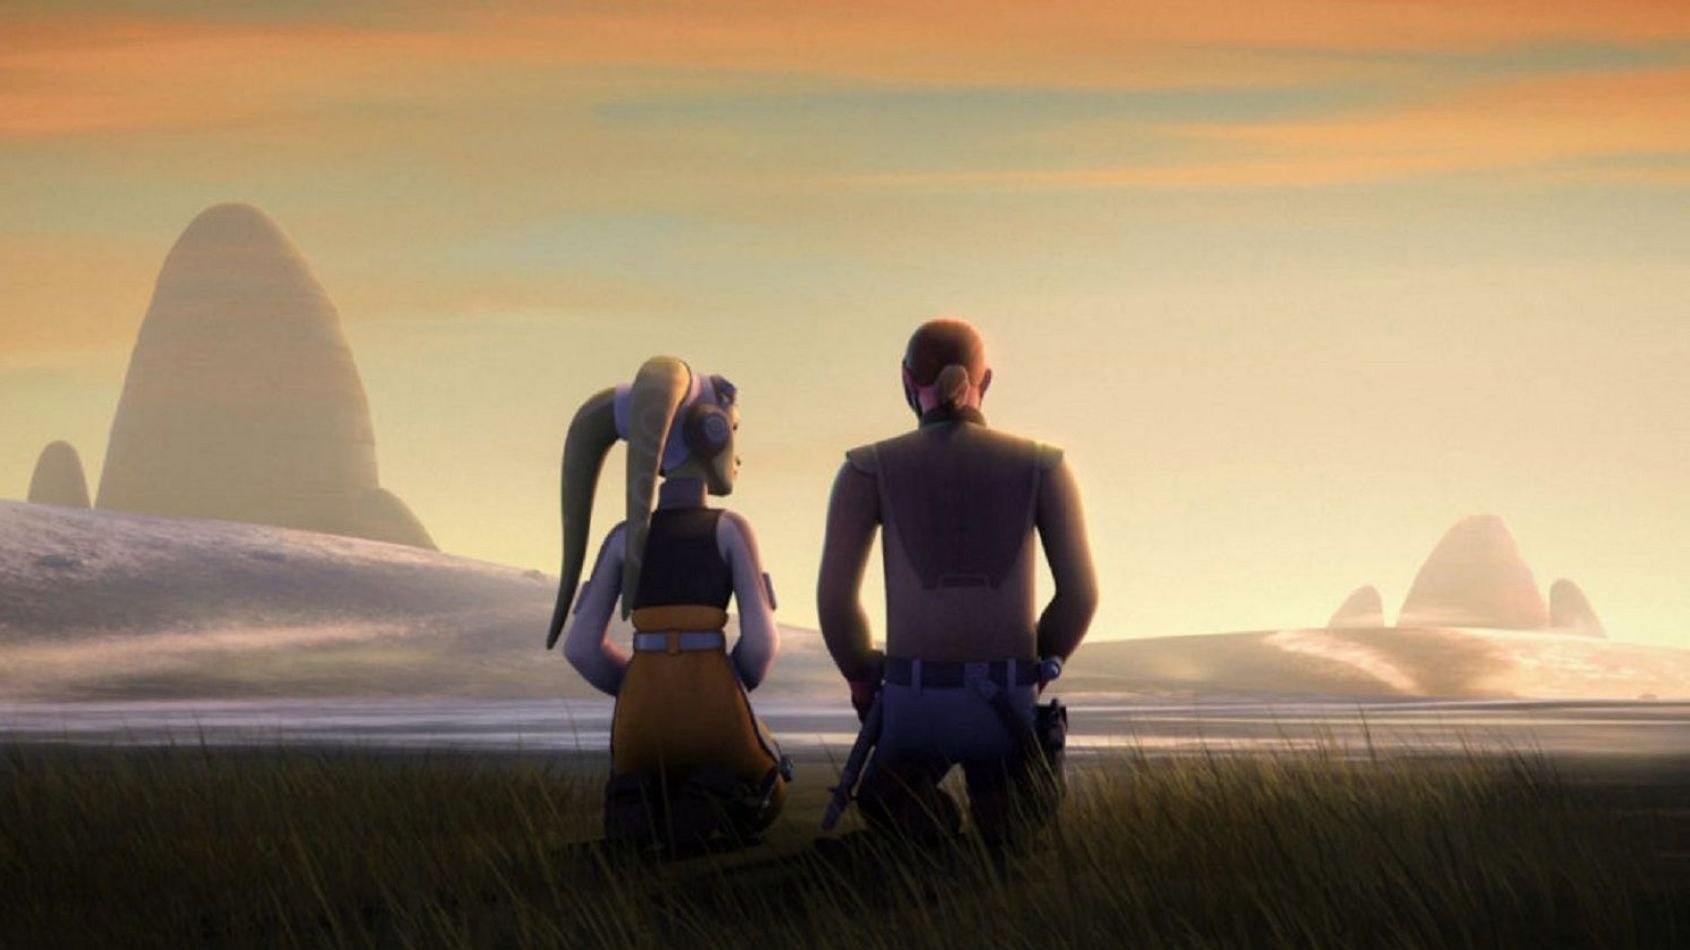 Rebels saison 4: les points importants du trailer